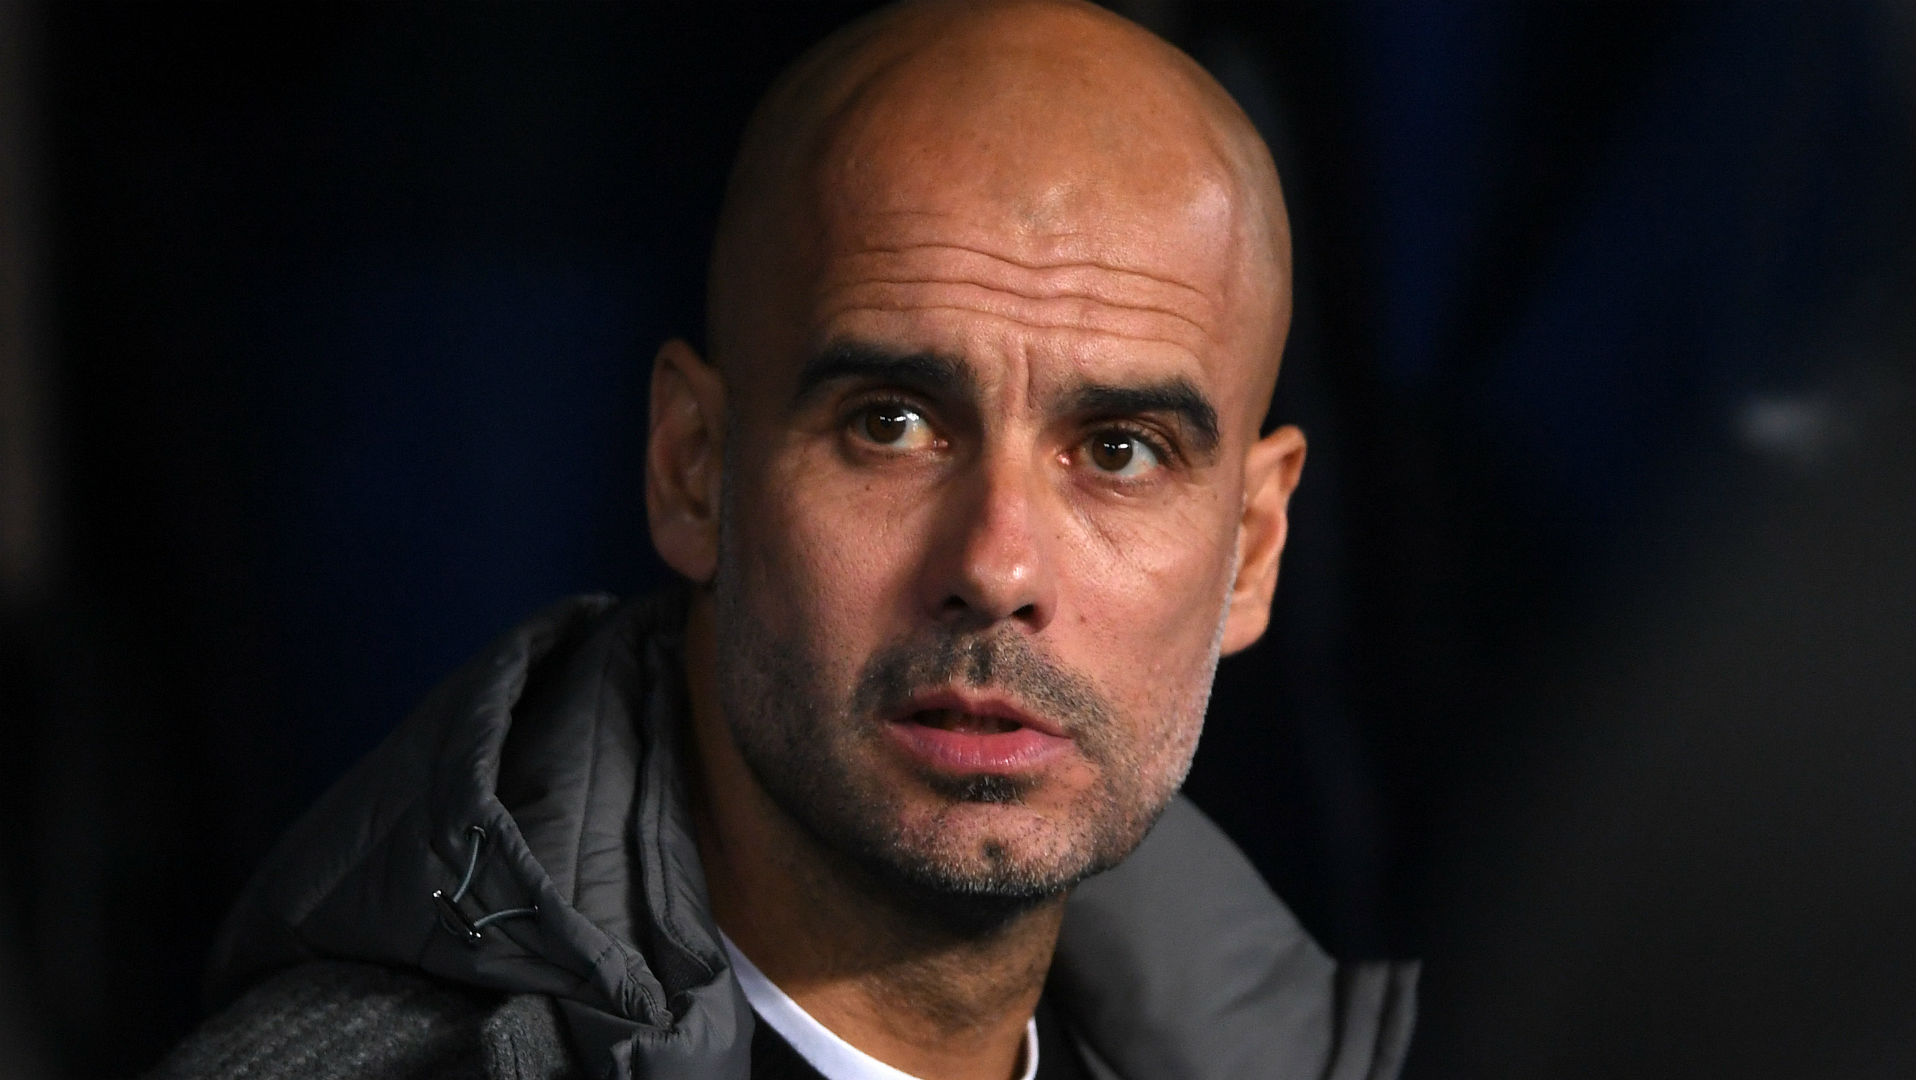 Guardiola expects punishment if City broke financial rules